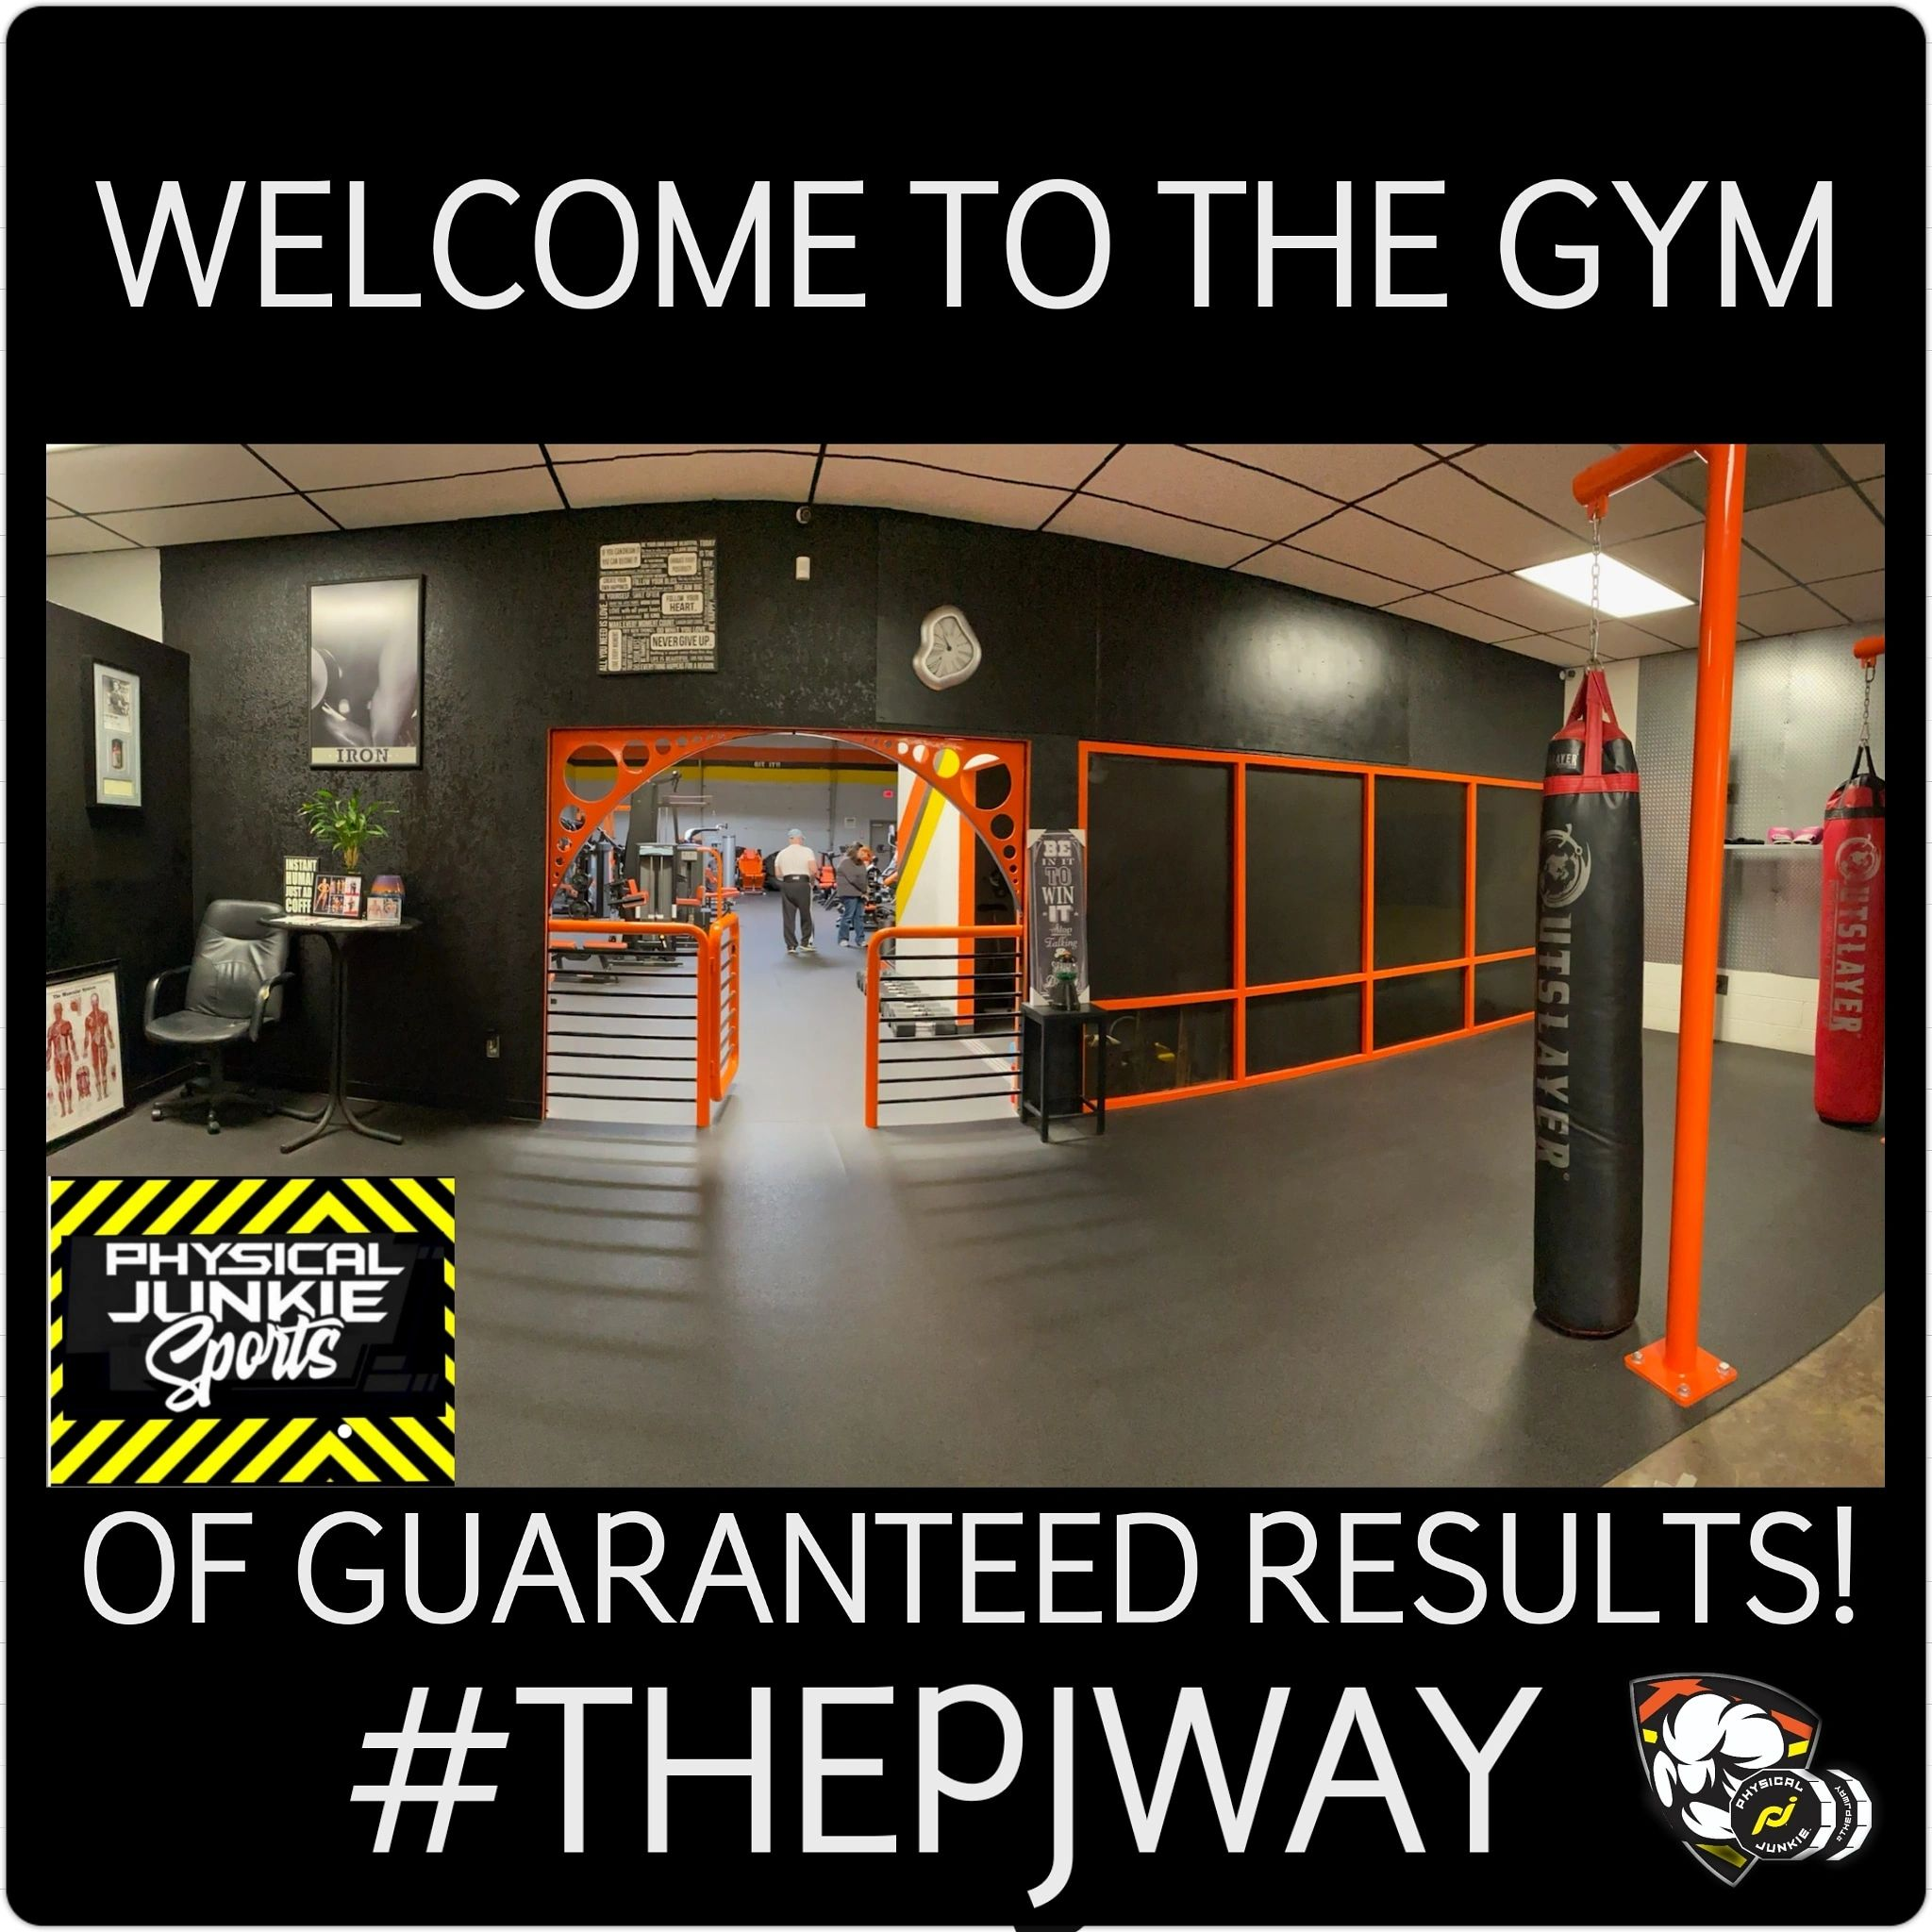 Our PRIVATE JYM supplies its user a program of GUARANTEED RESULTS! Entry requires you to use a meal